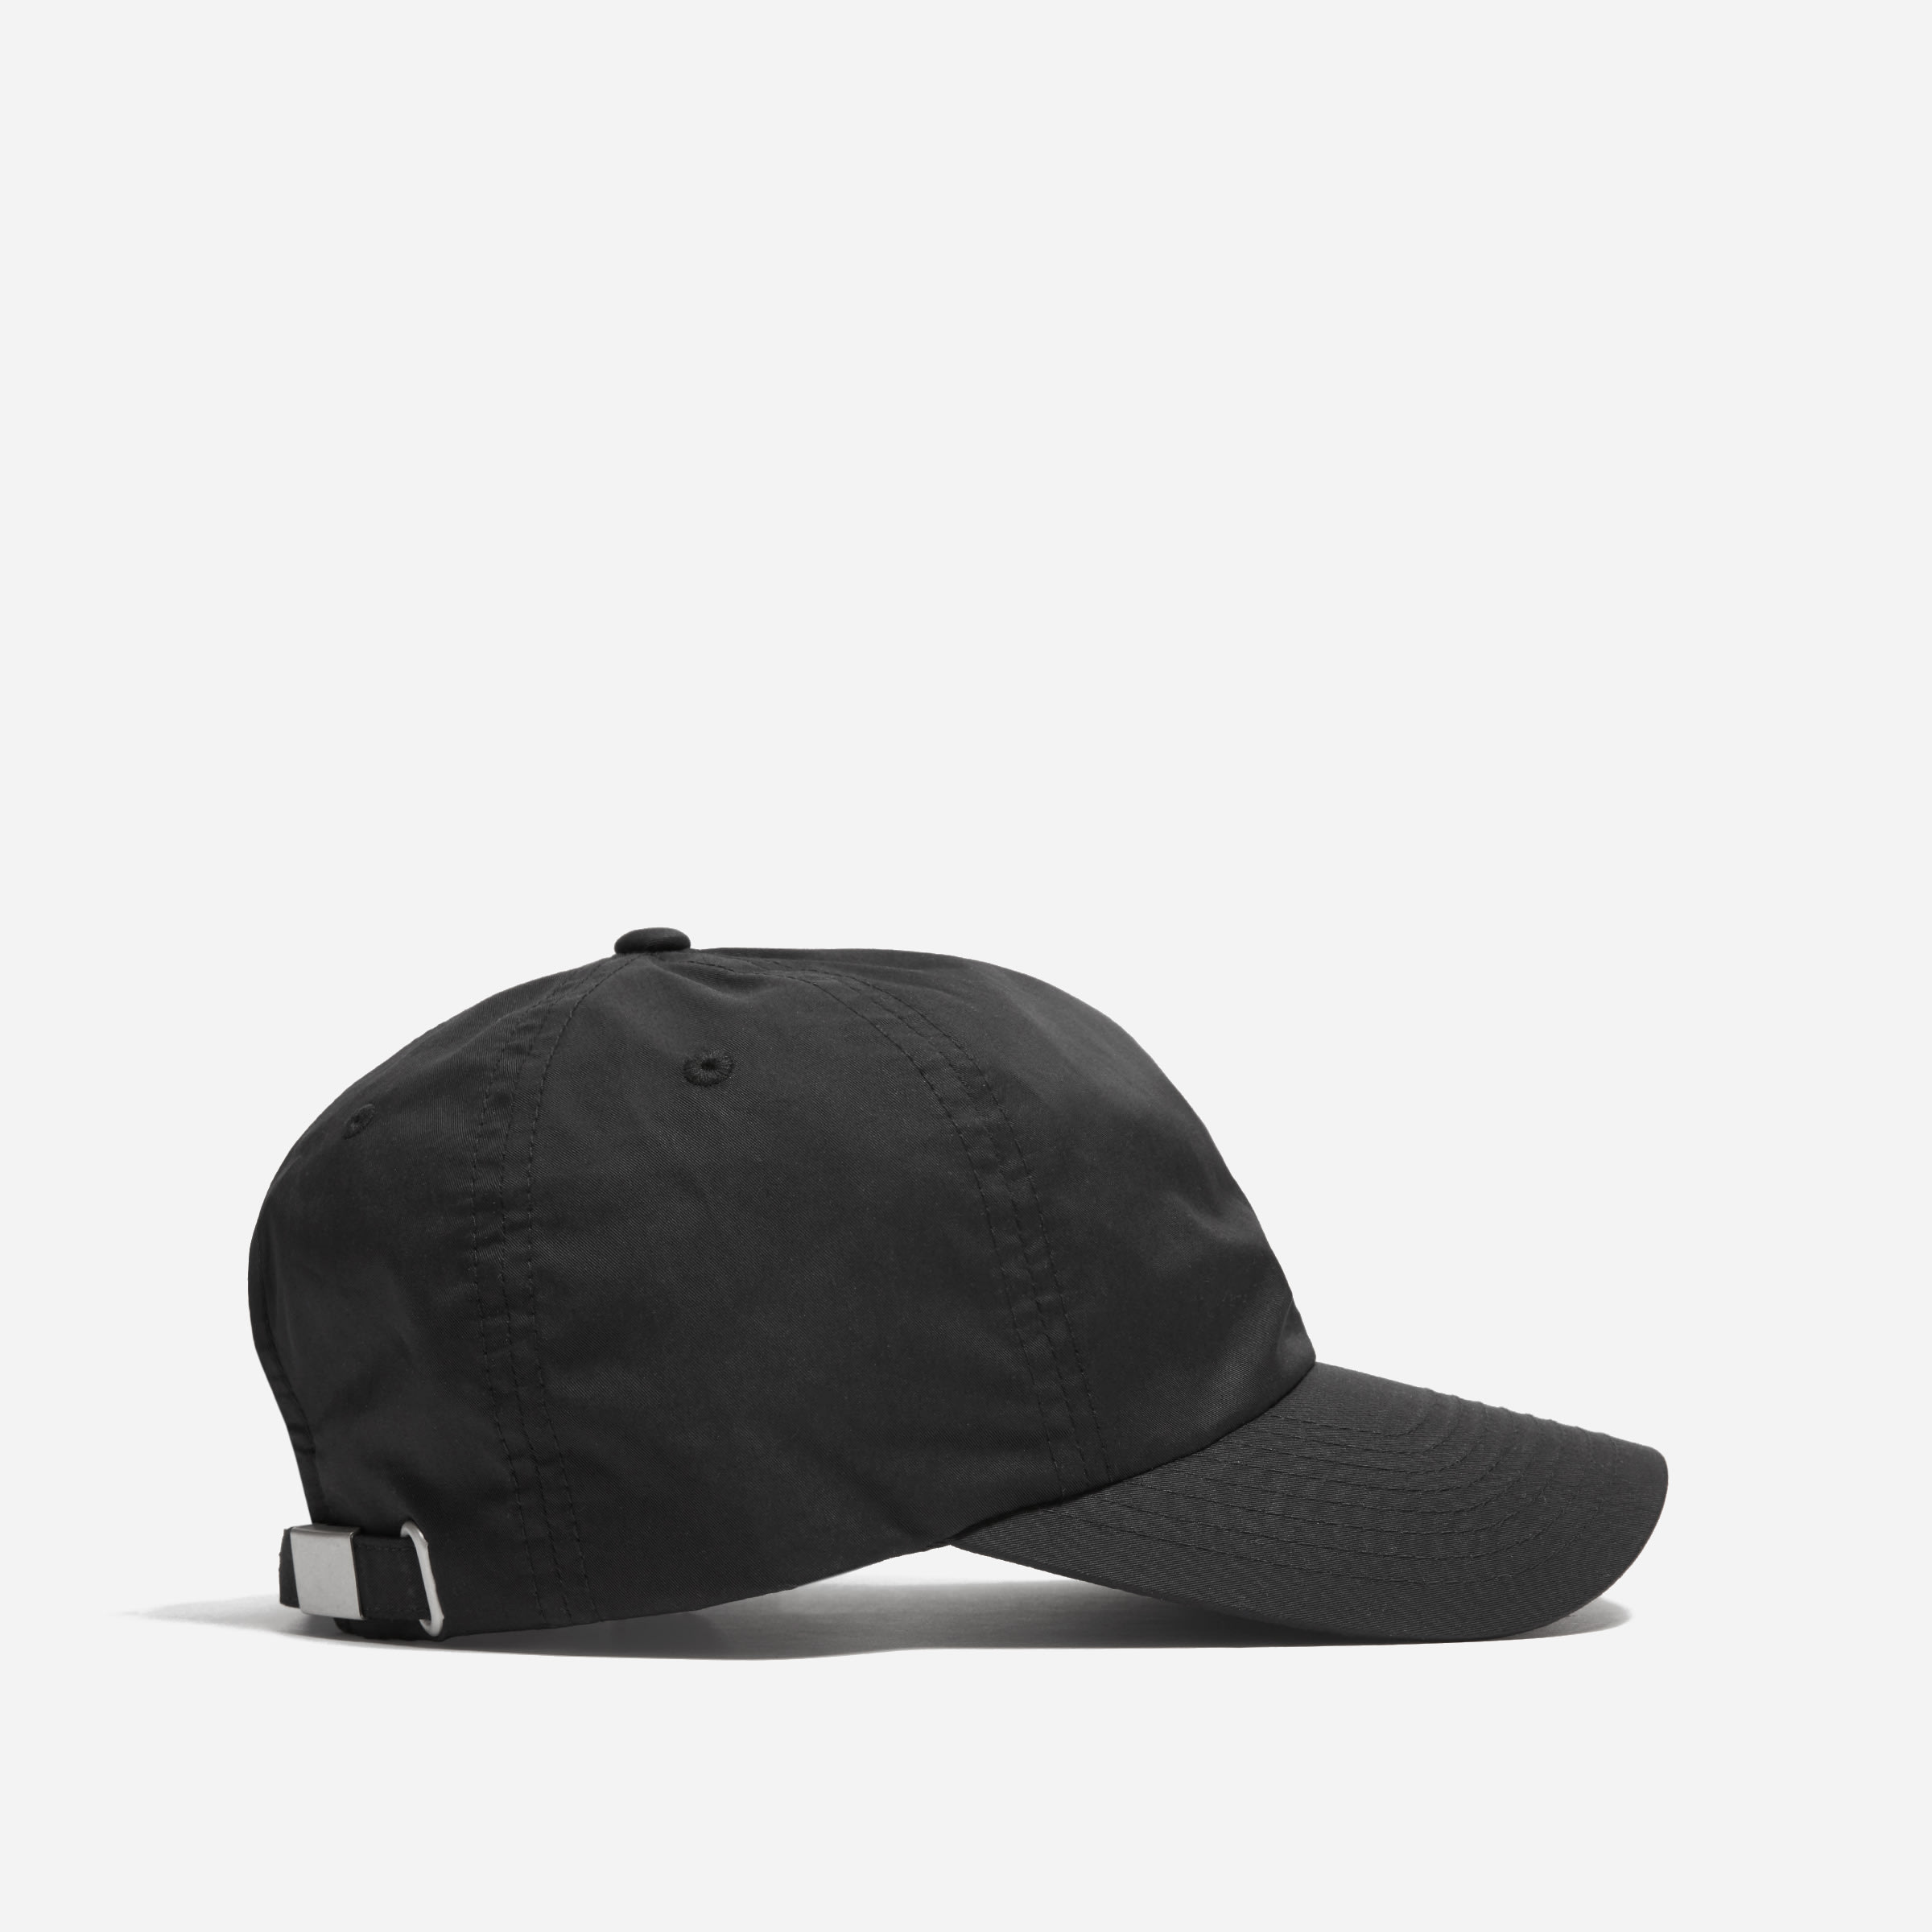 The Baseball Cap by Everlane